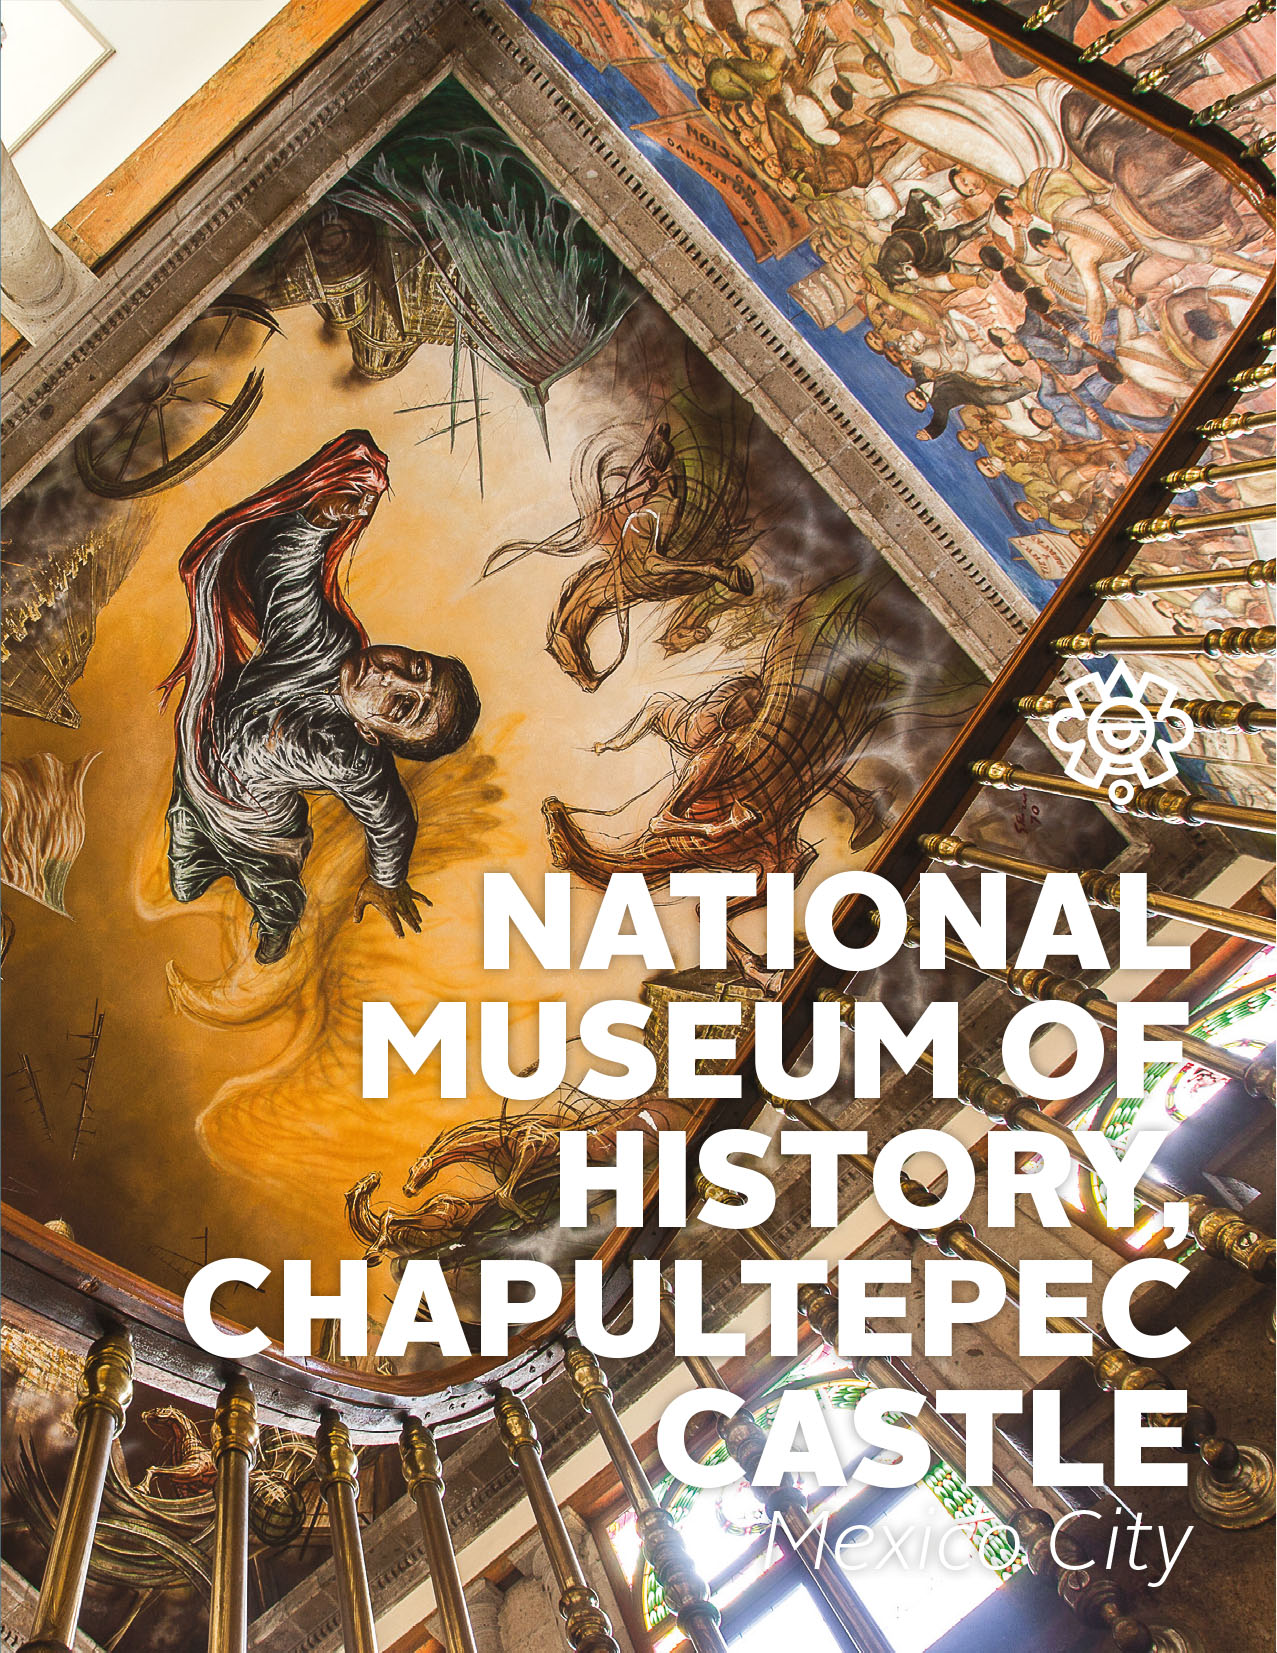 National Museum of History, Chapultepec Castle